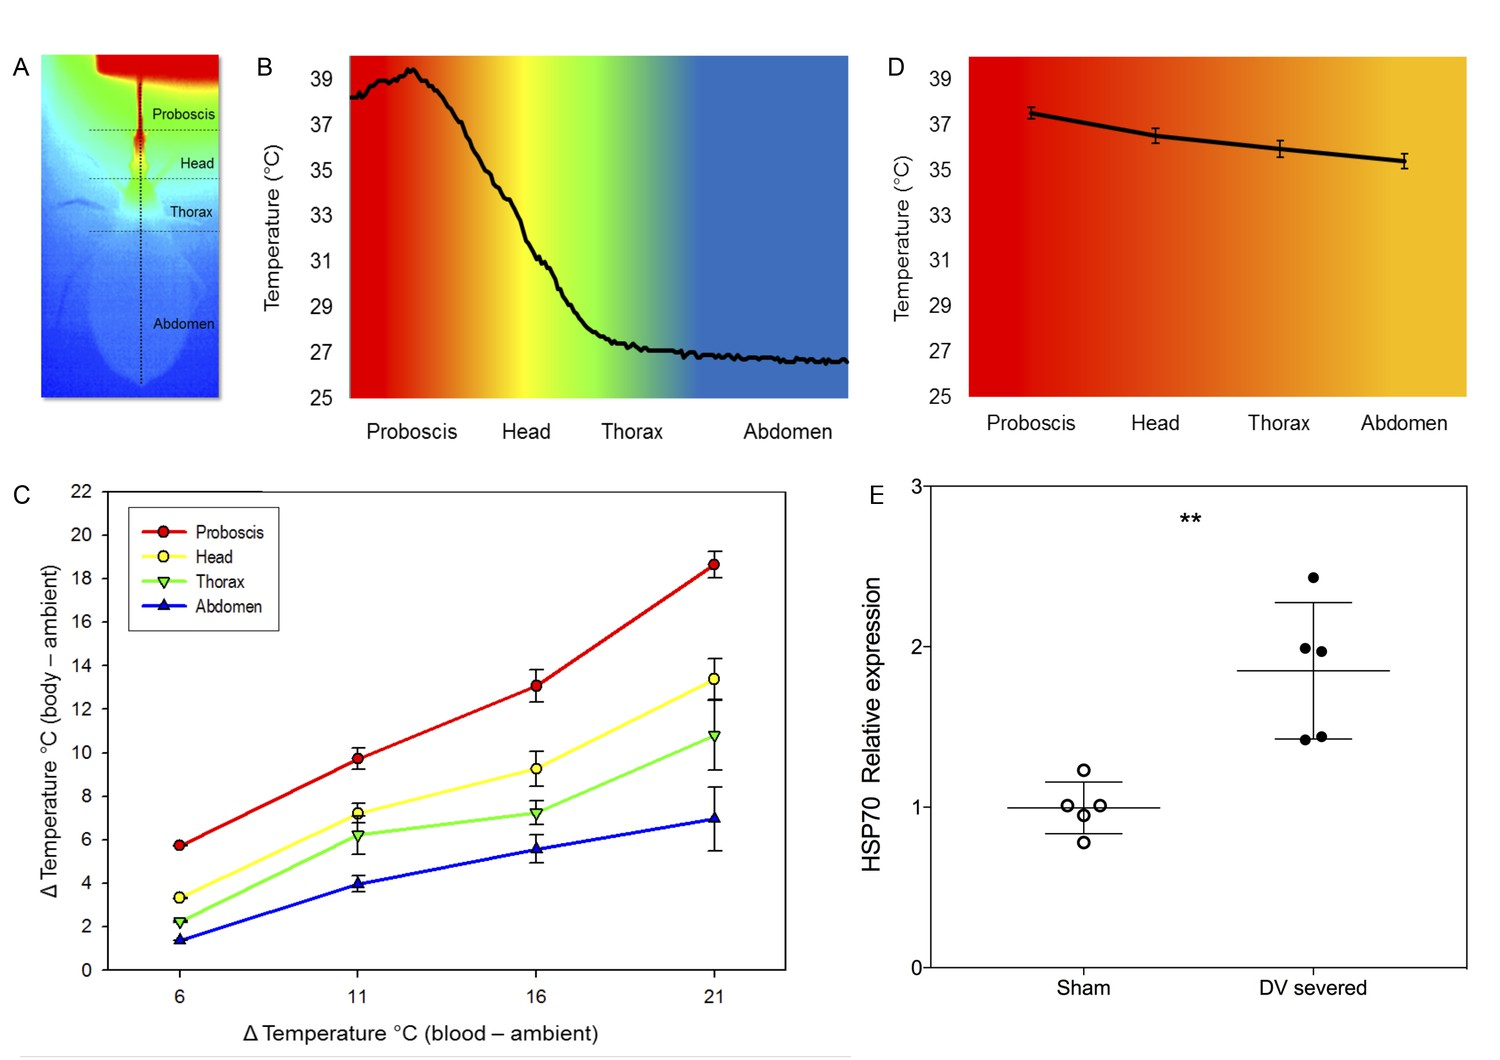 Countercurrent heat exchange and thermoregulation during